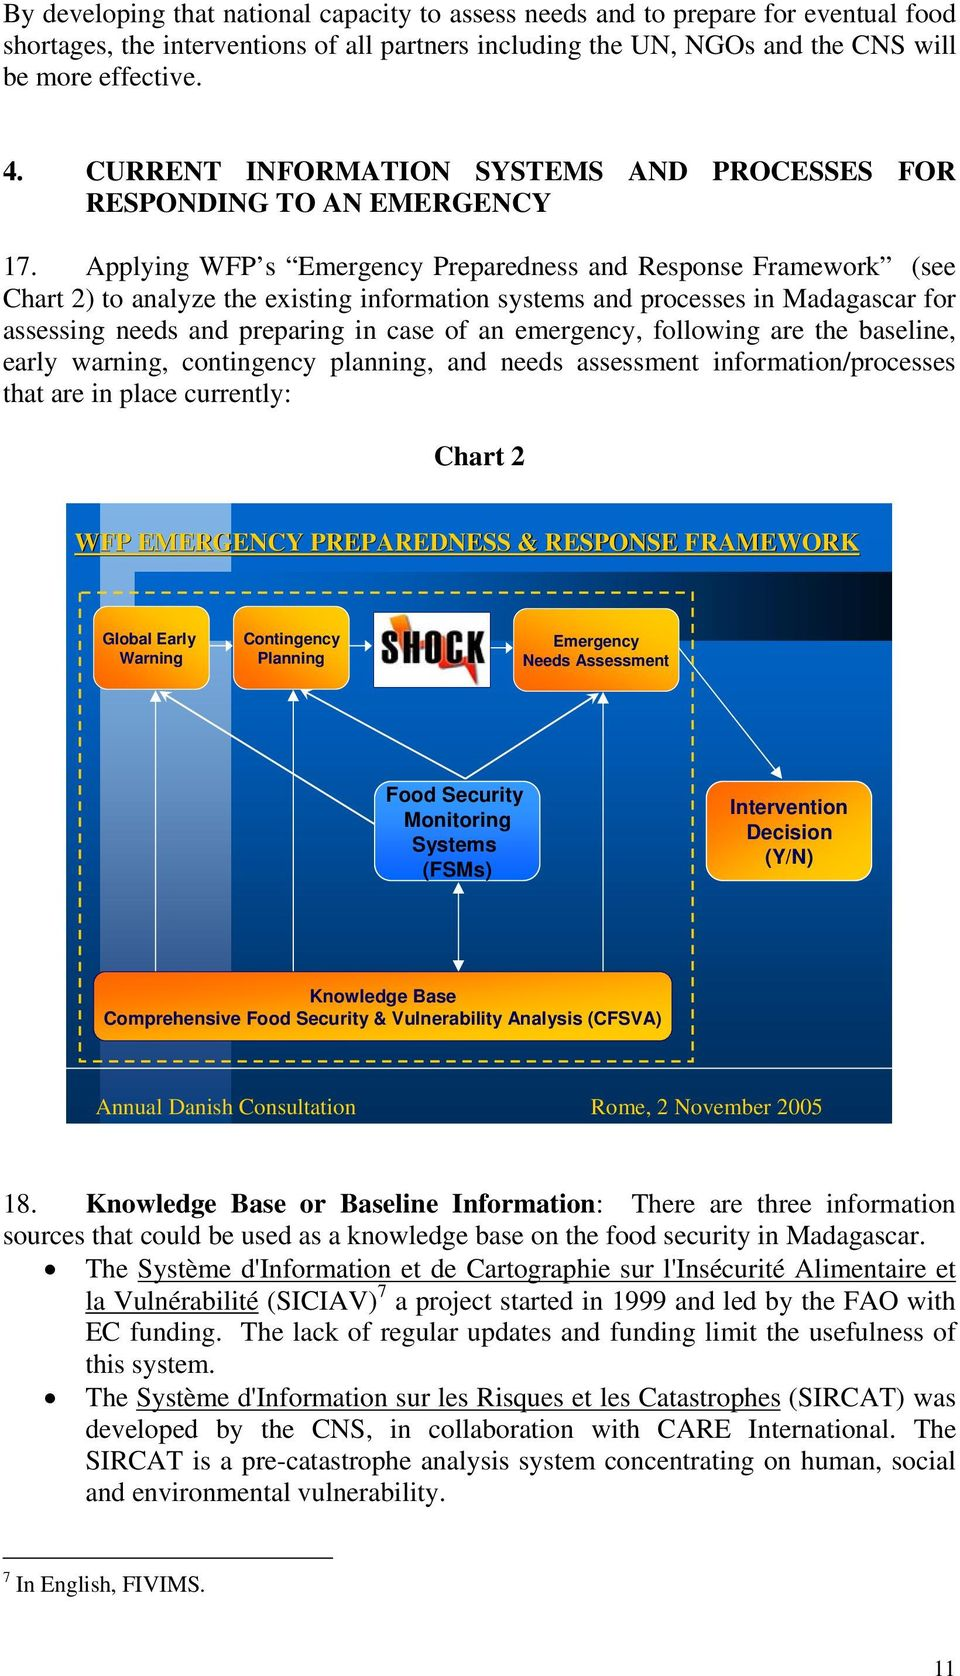 Applying WFP s Emergency Preparedness and Response Framework (see Chart 2) to analyze the existing information systems and processes in Madagascar for assessing needs and preparing in case of an